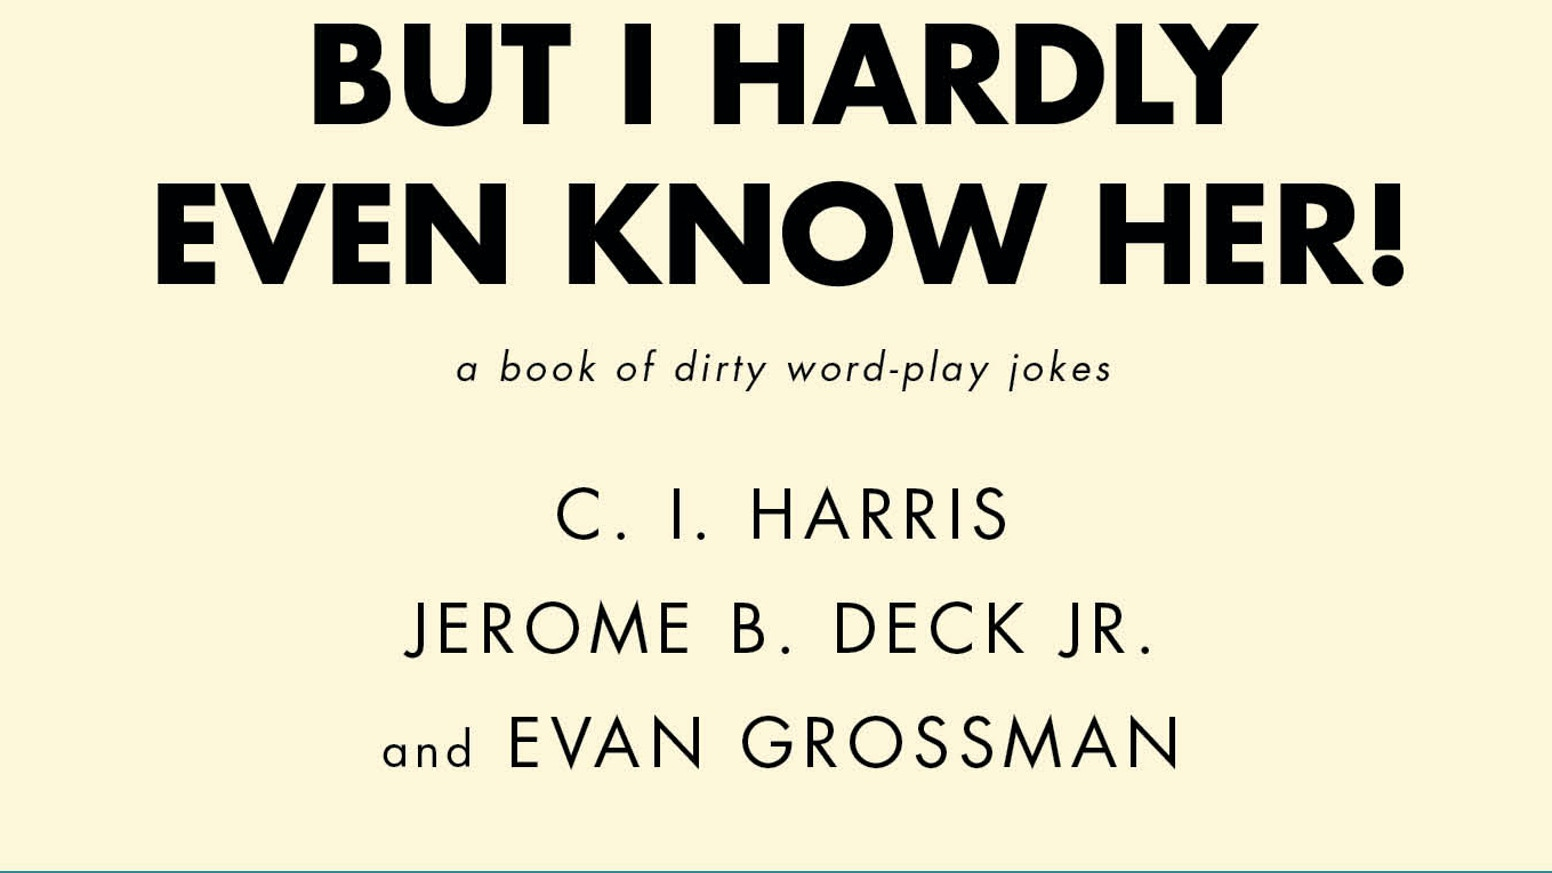 dirty jokes word play know puns hardly meaning double even phrases sound kickstarter format proudly immature ordinary uses